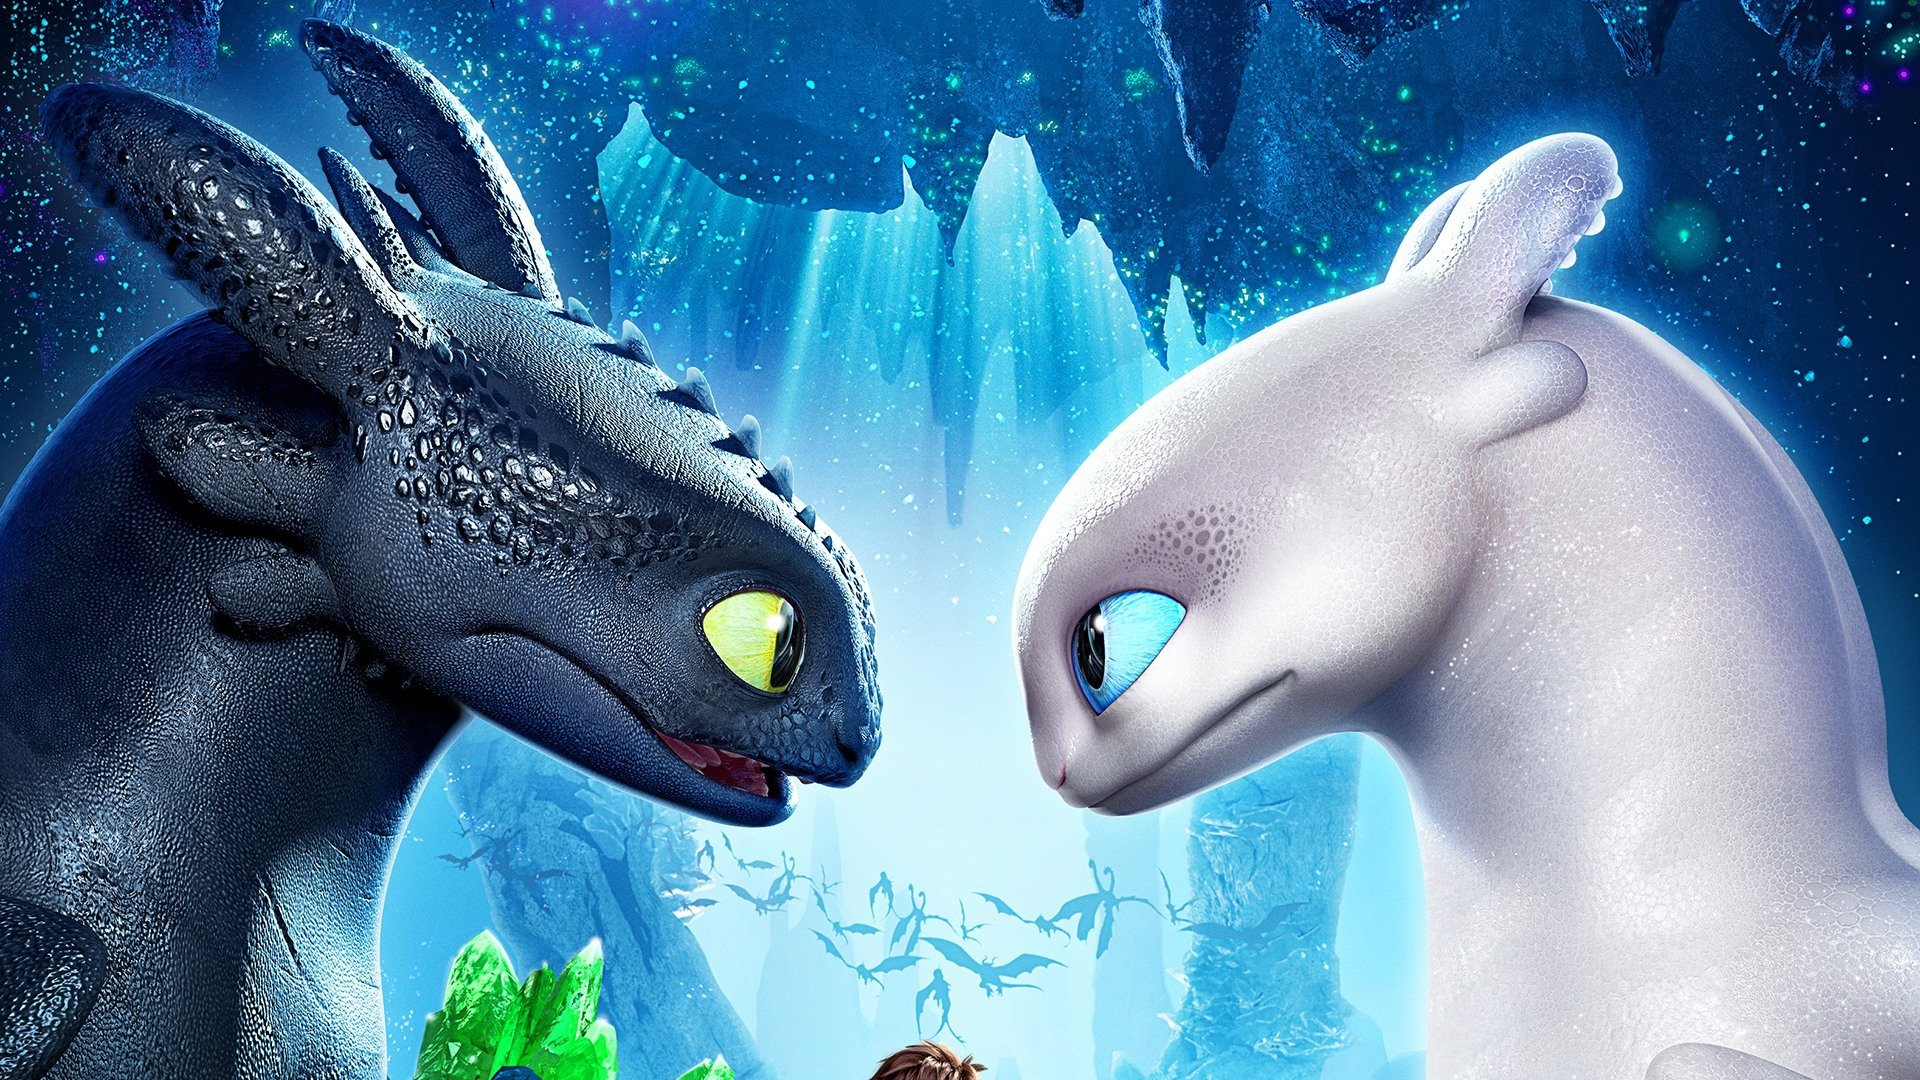 How To Train Your Dragon The Hidden World Hd Wallpapers 7wallpapers Net